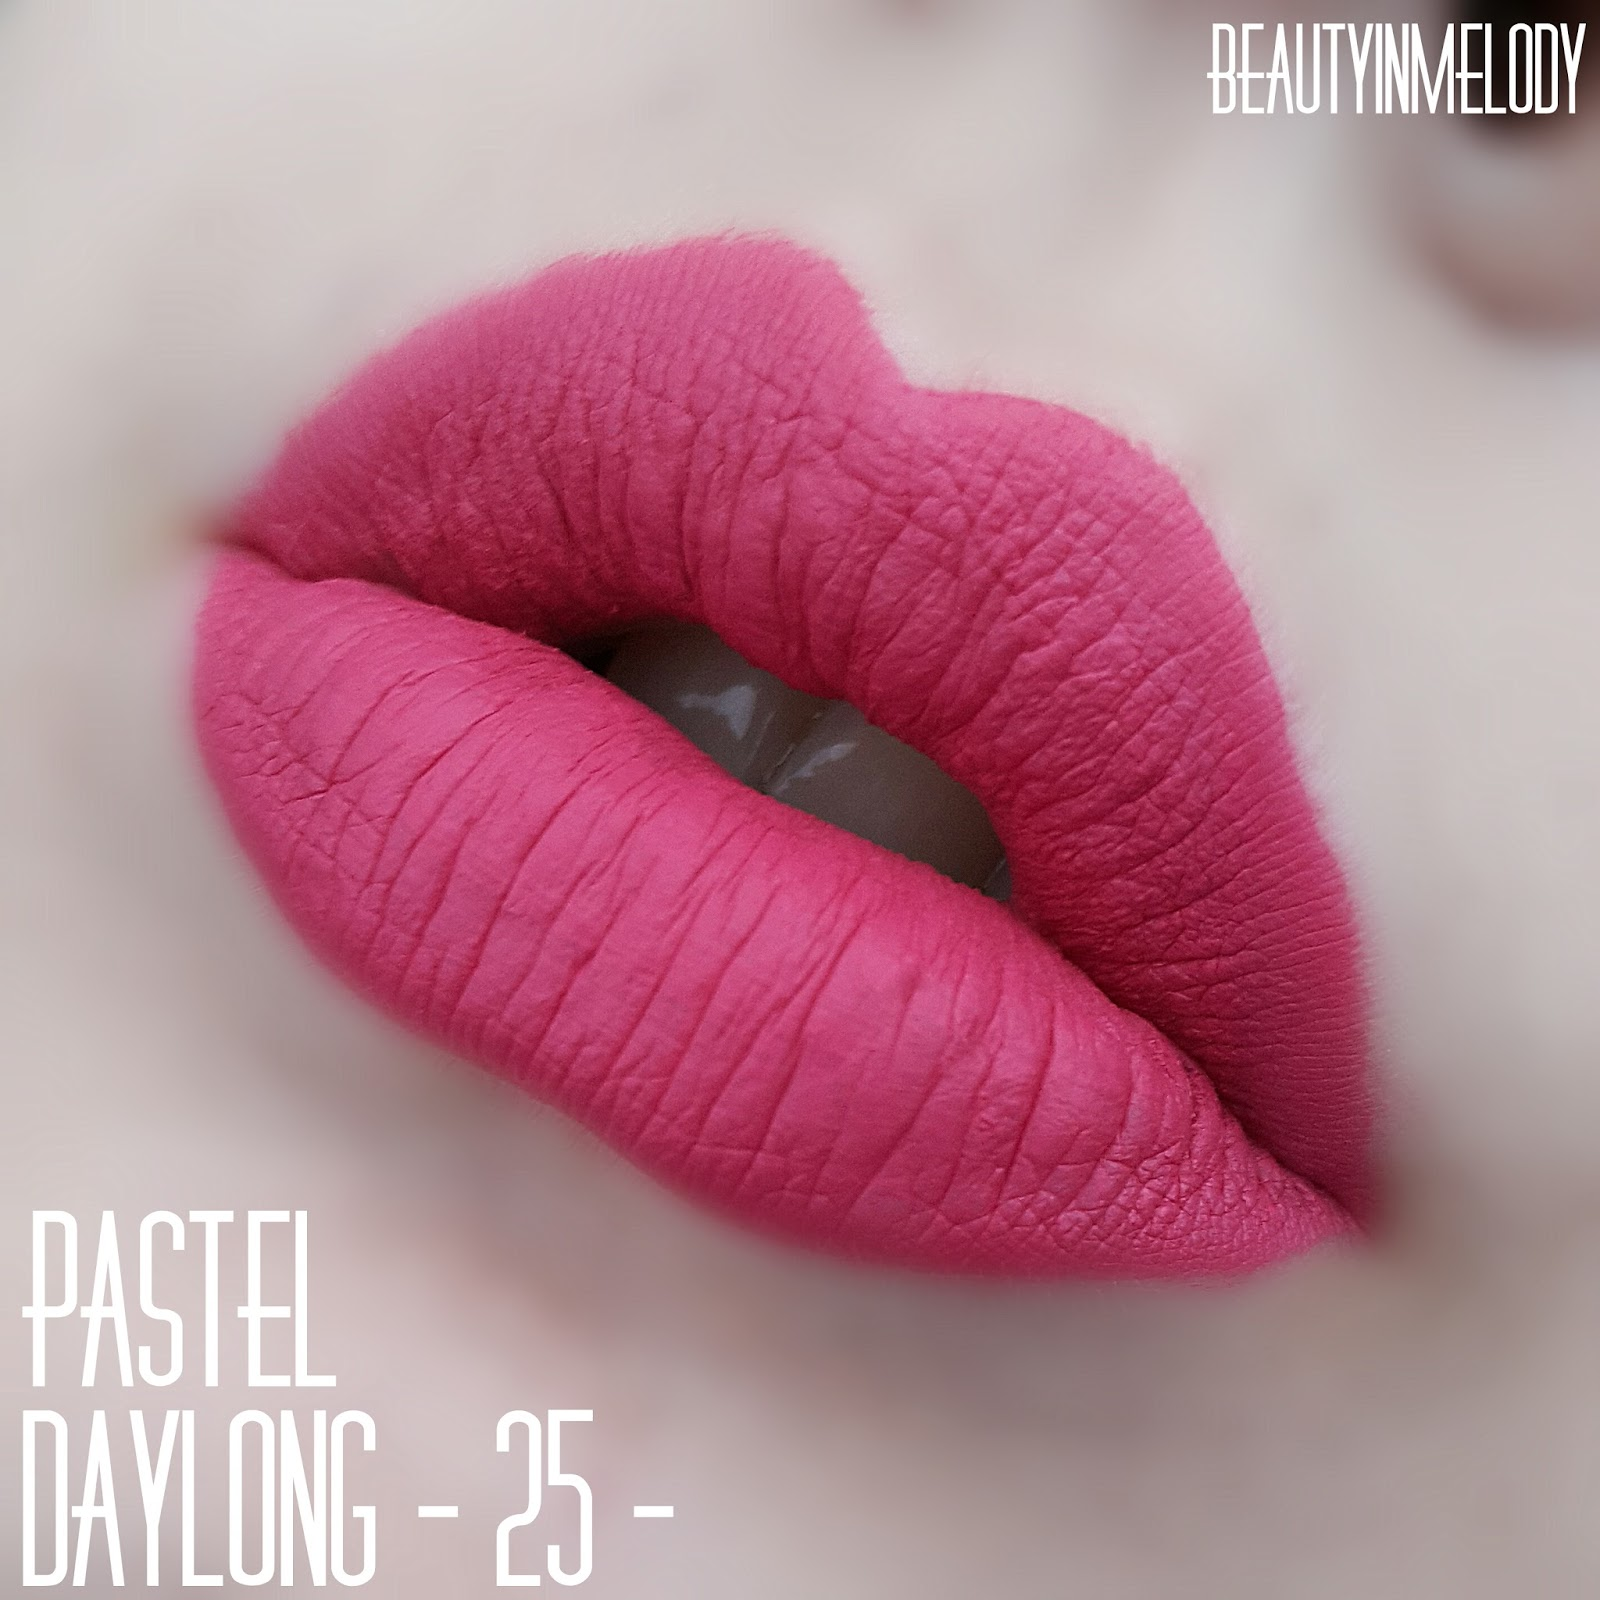 Beautymelody Pastel Daylong Lipcolor - New Limited -8539